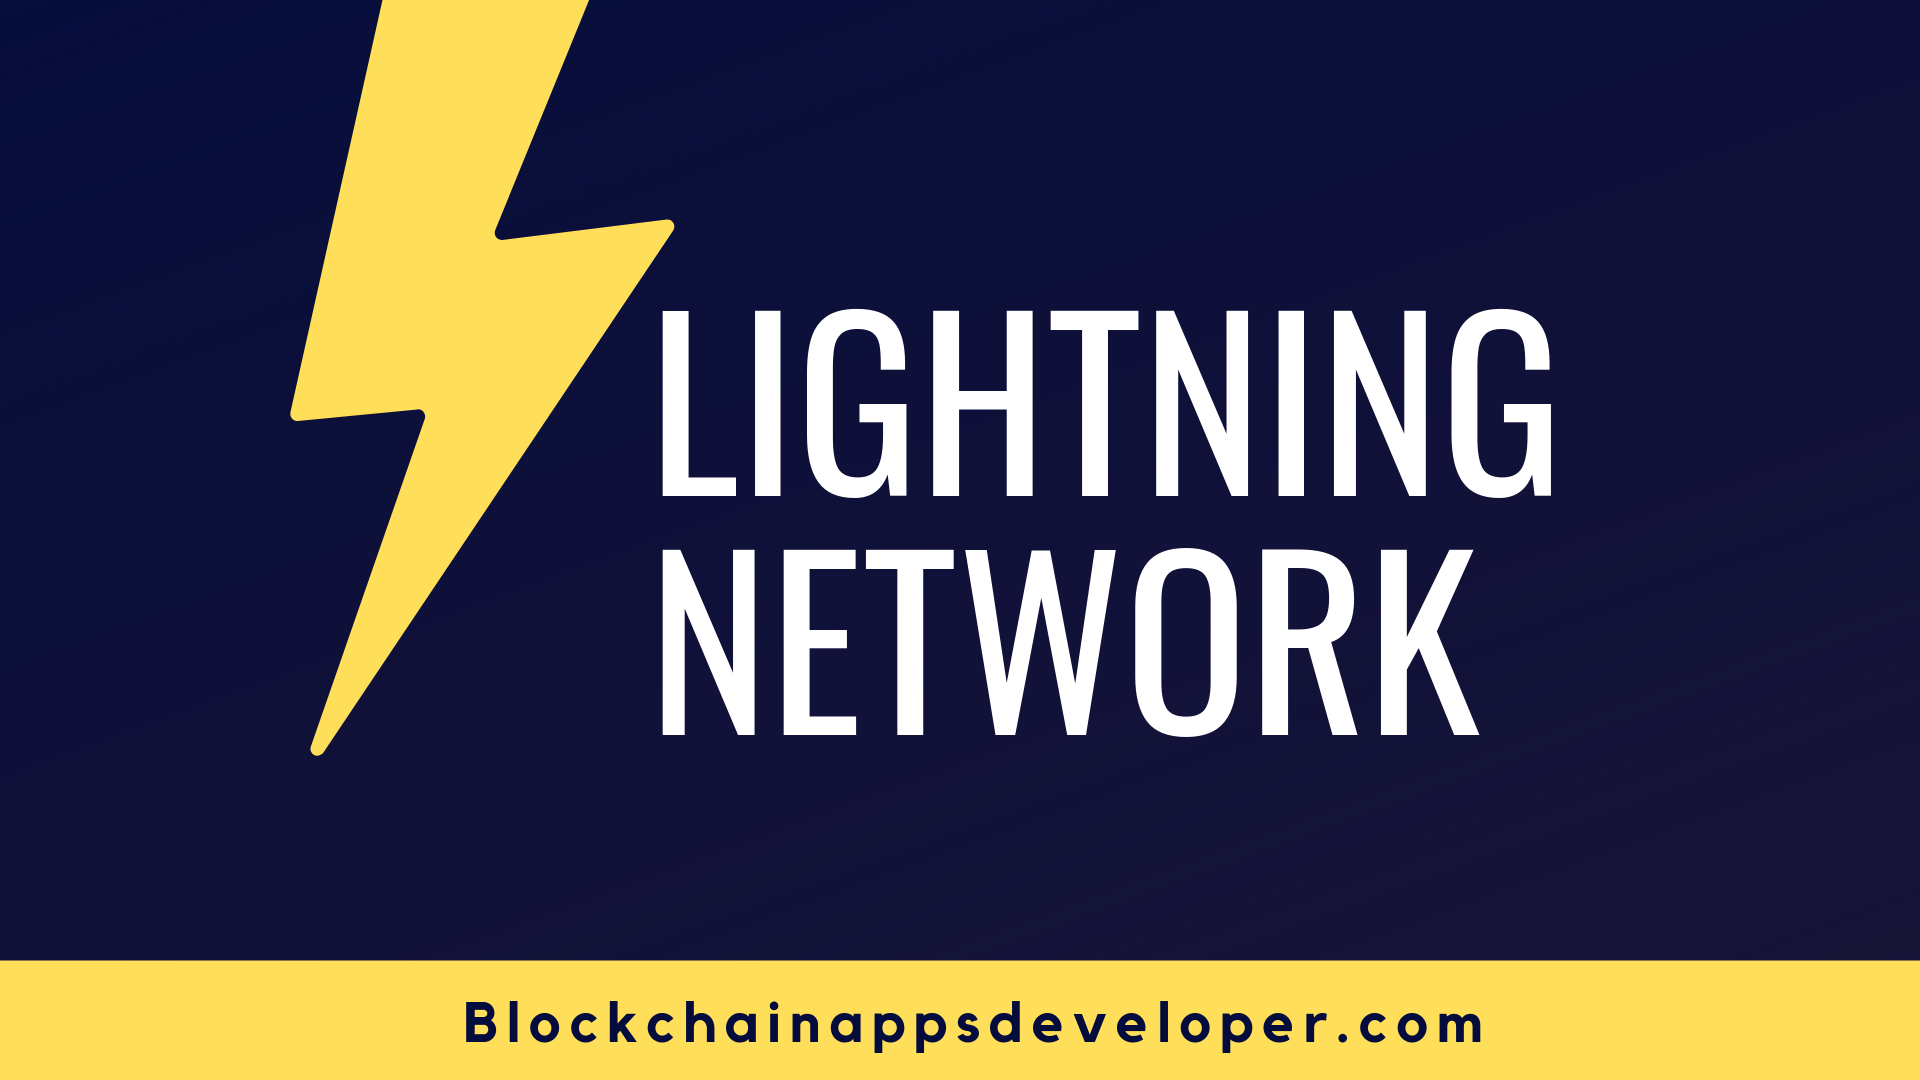 What Is Lightning Network, And Why?